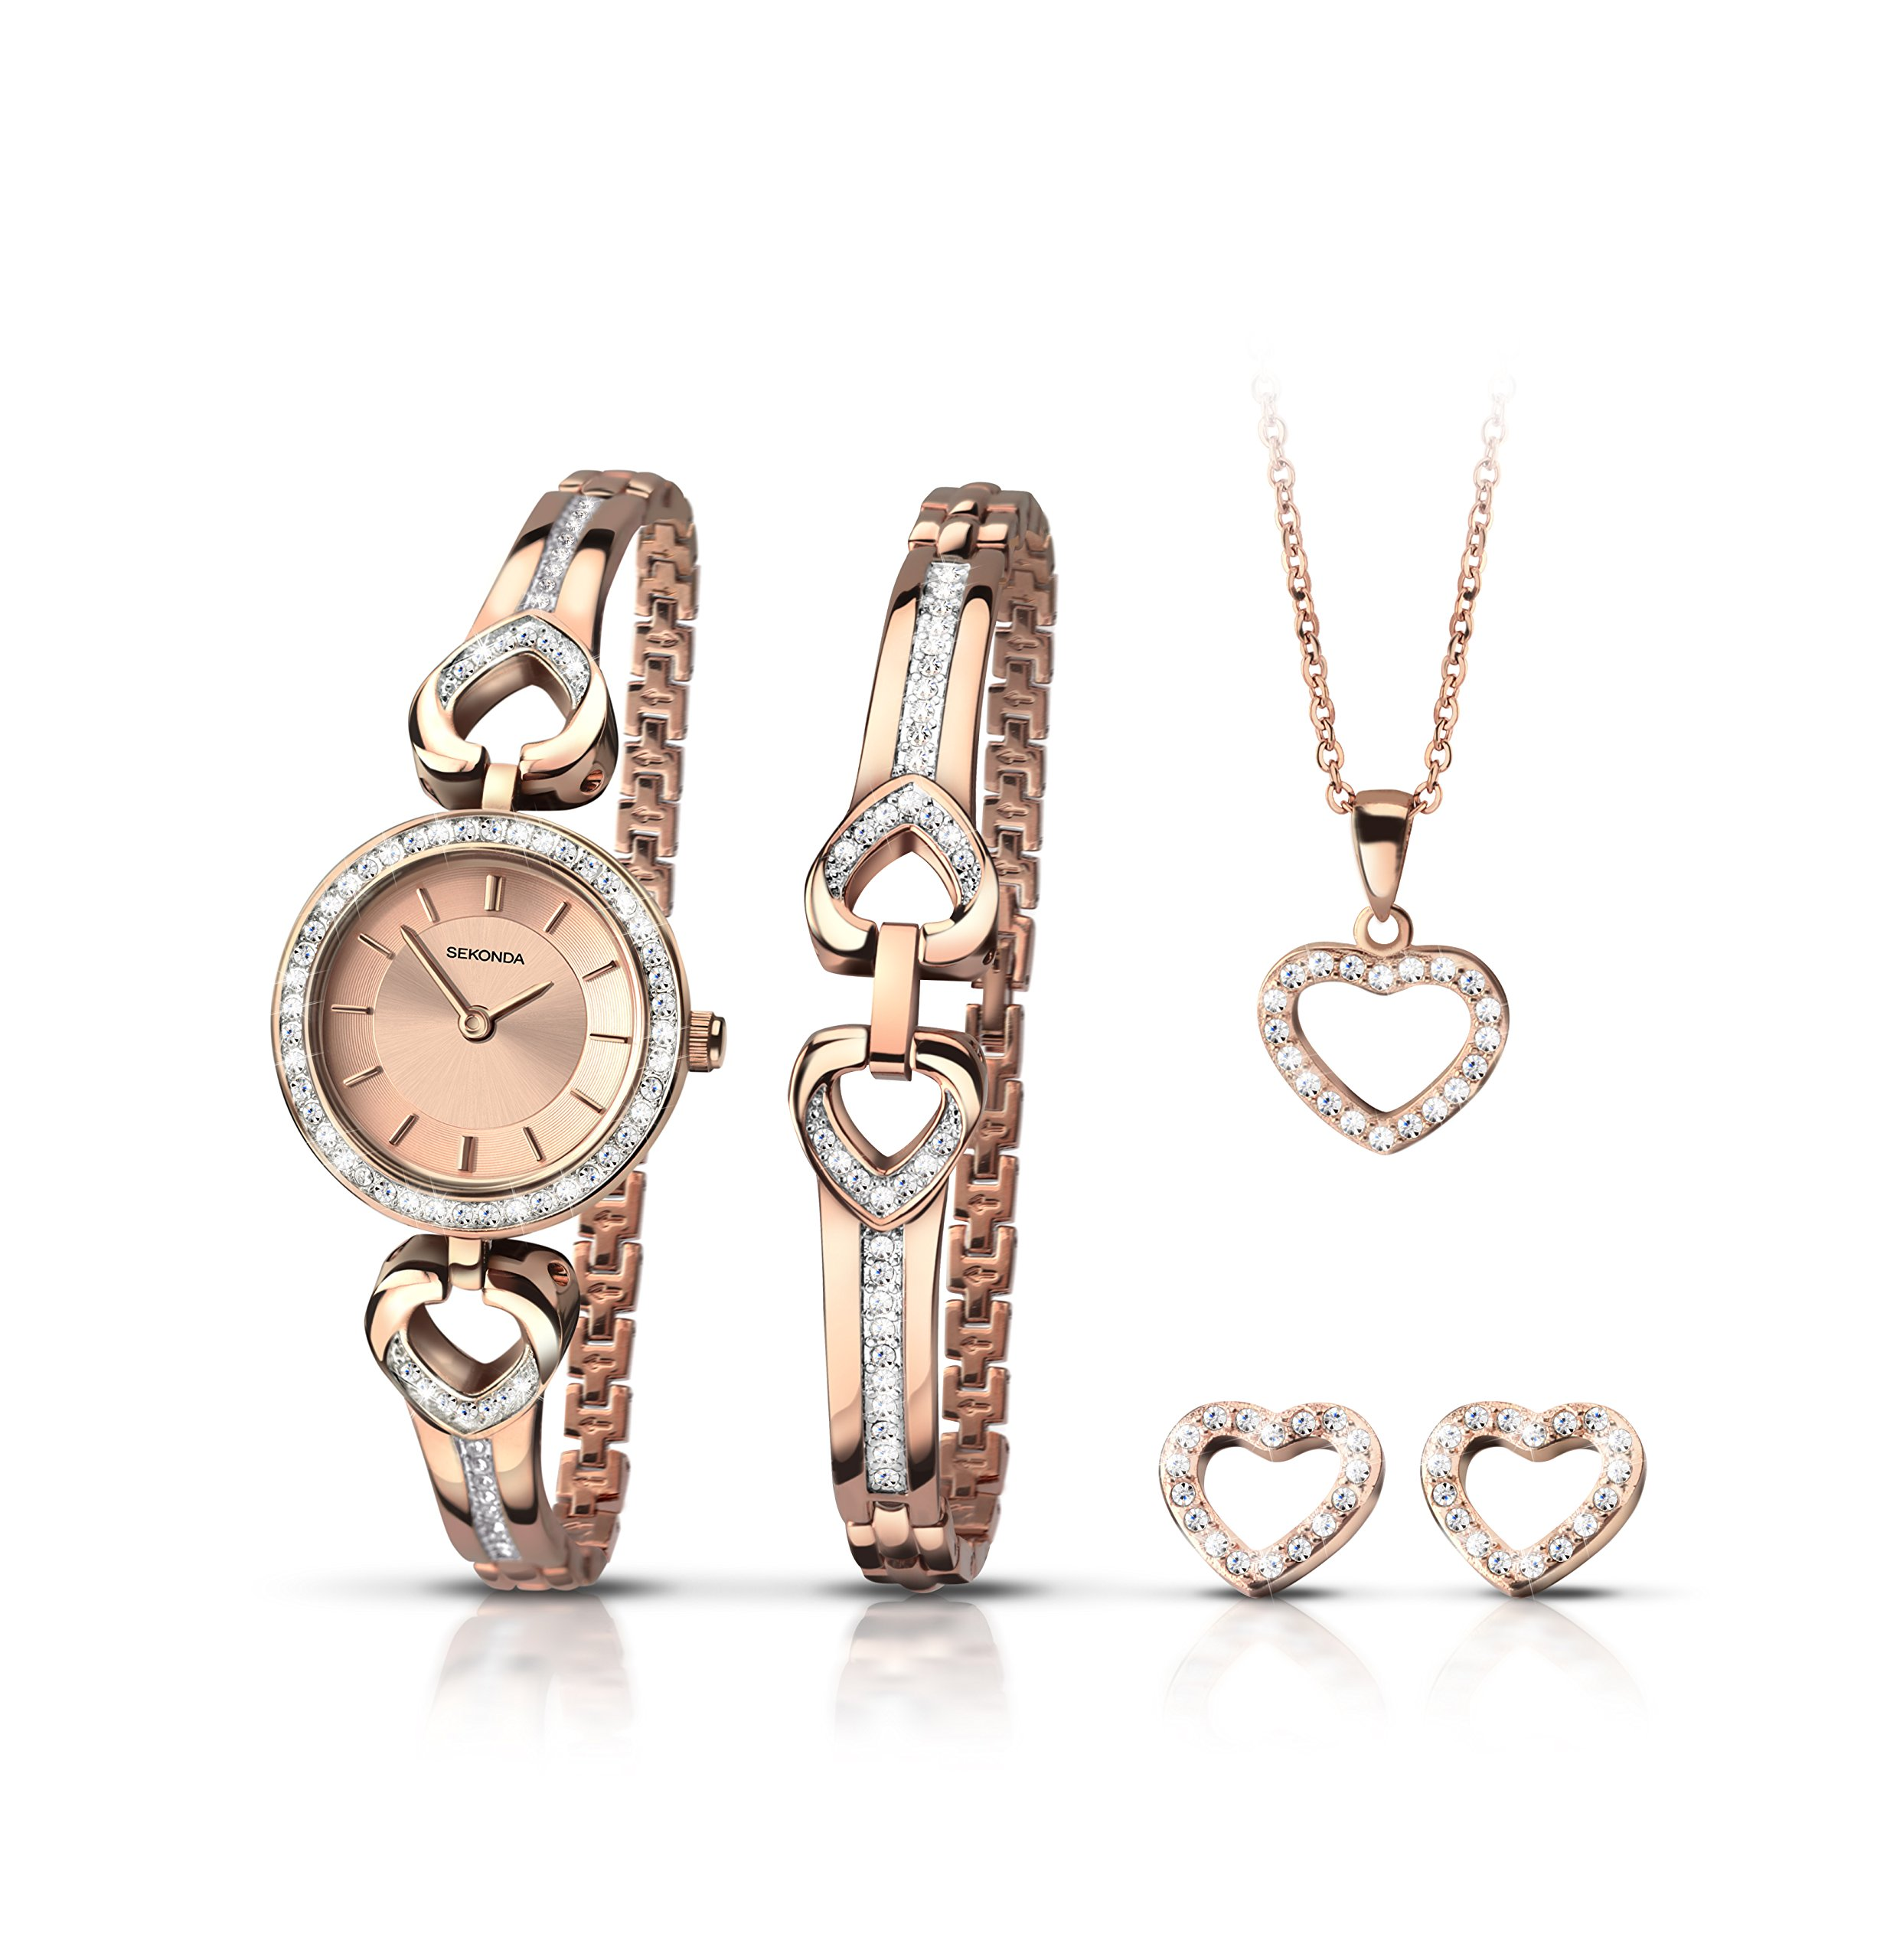 Sekonda Christmas Gift Set Watch With Heart Necklace, Bracelet and Earrings 2363G